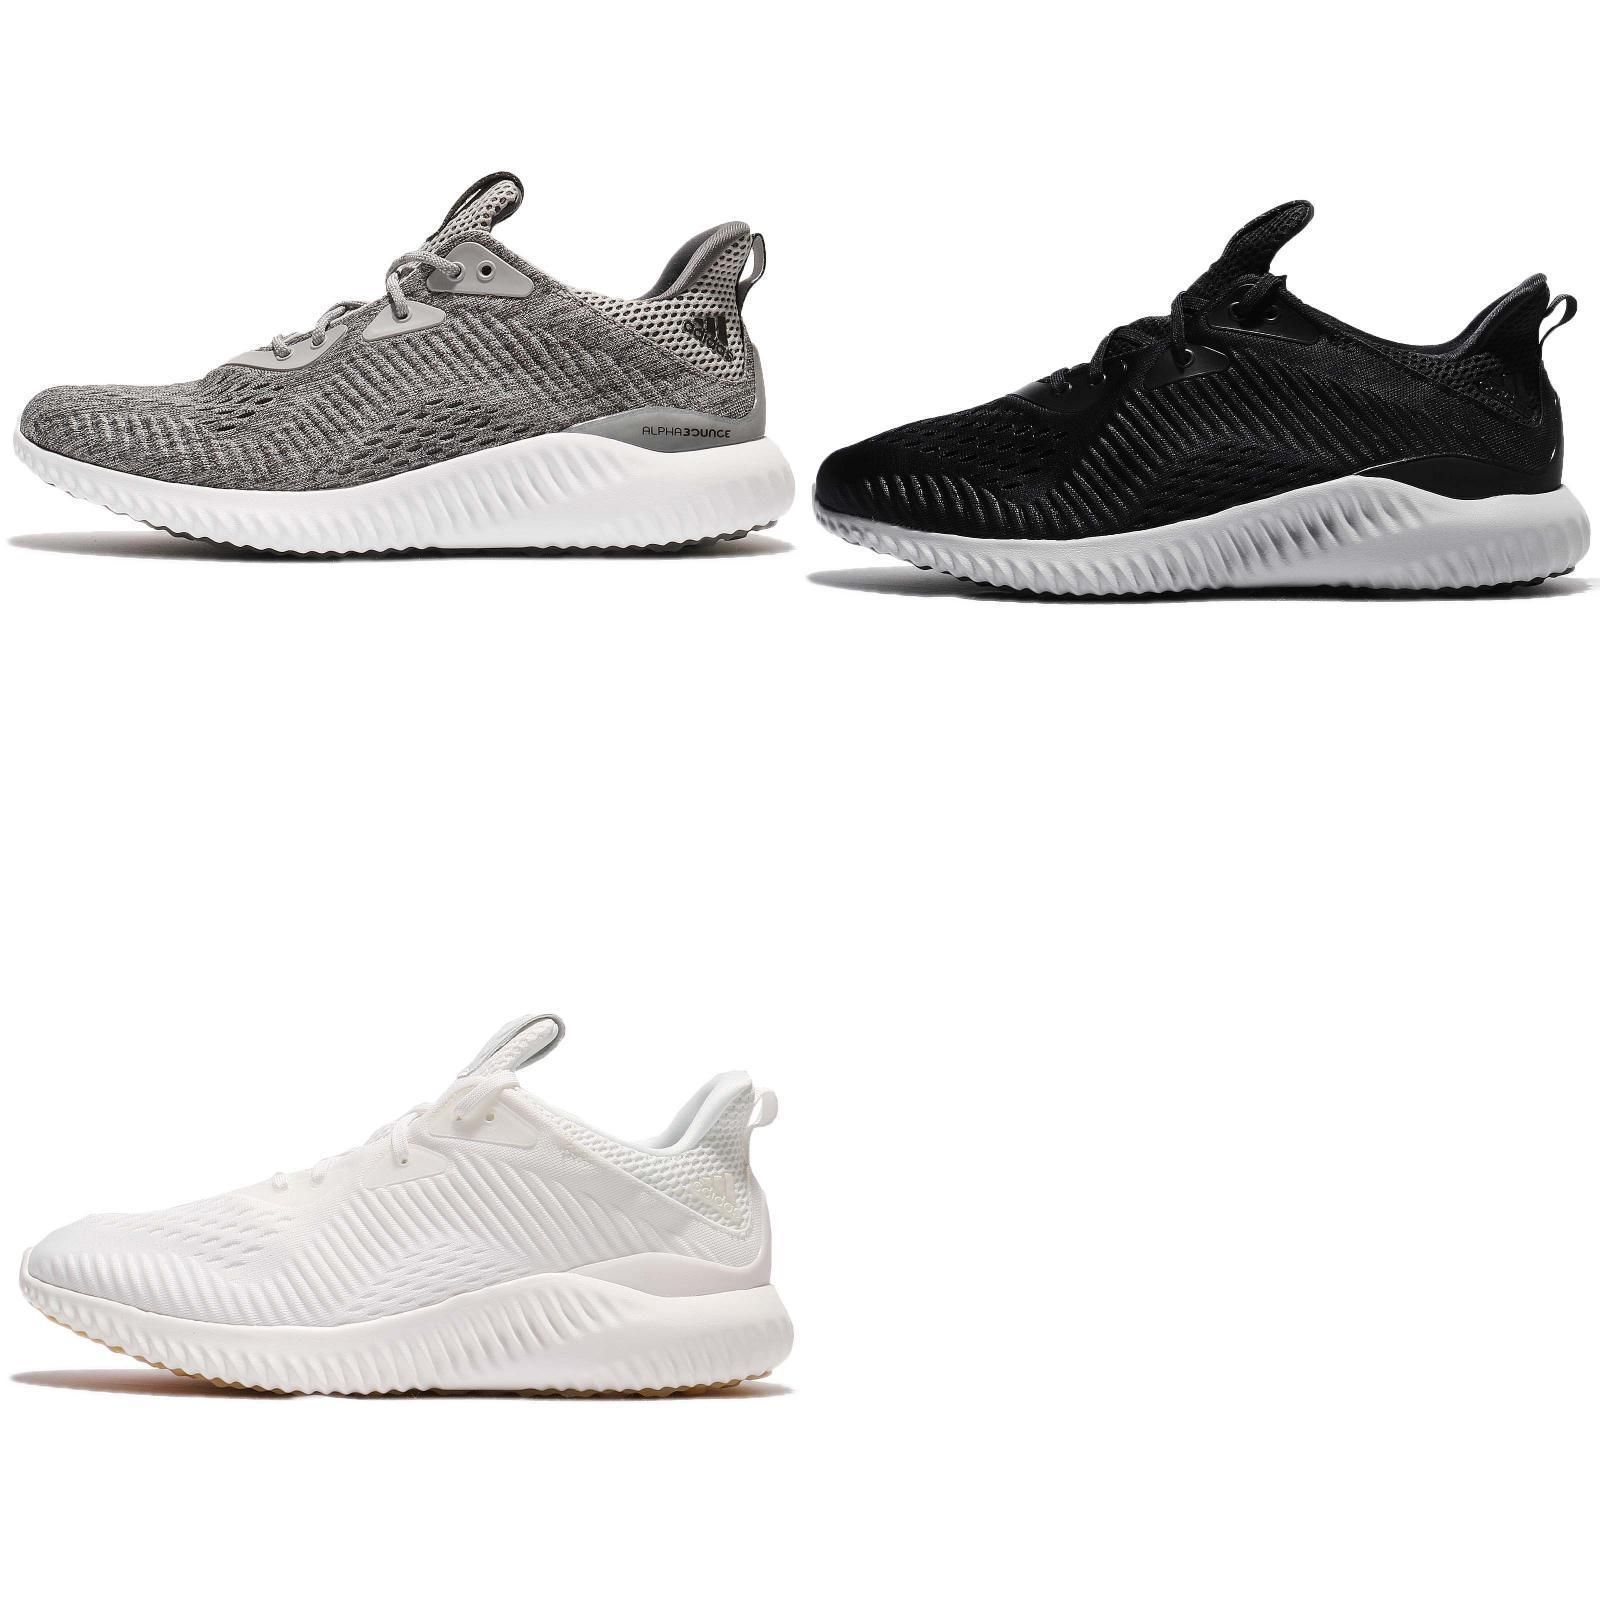 Adidas Alphabounce Em M Men Running Shoes Sneakers Trainers Pick 1